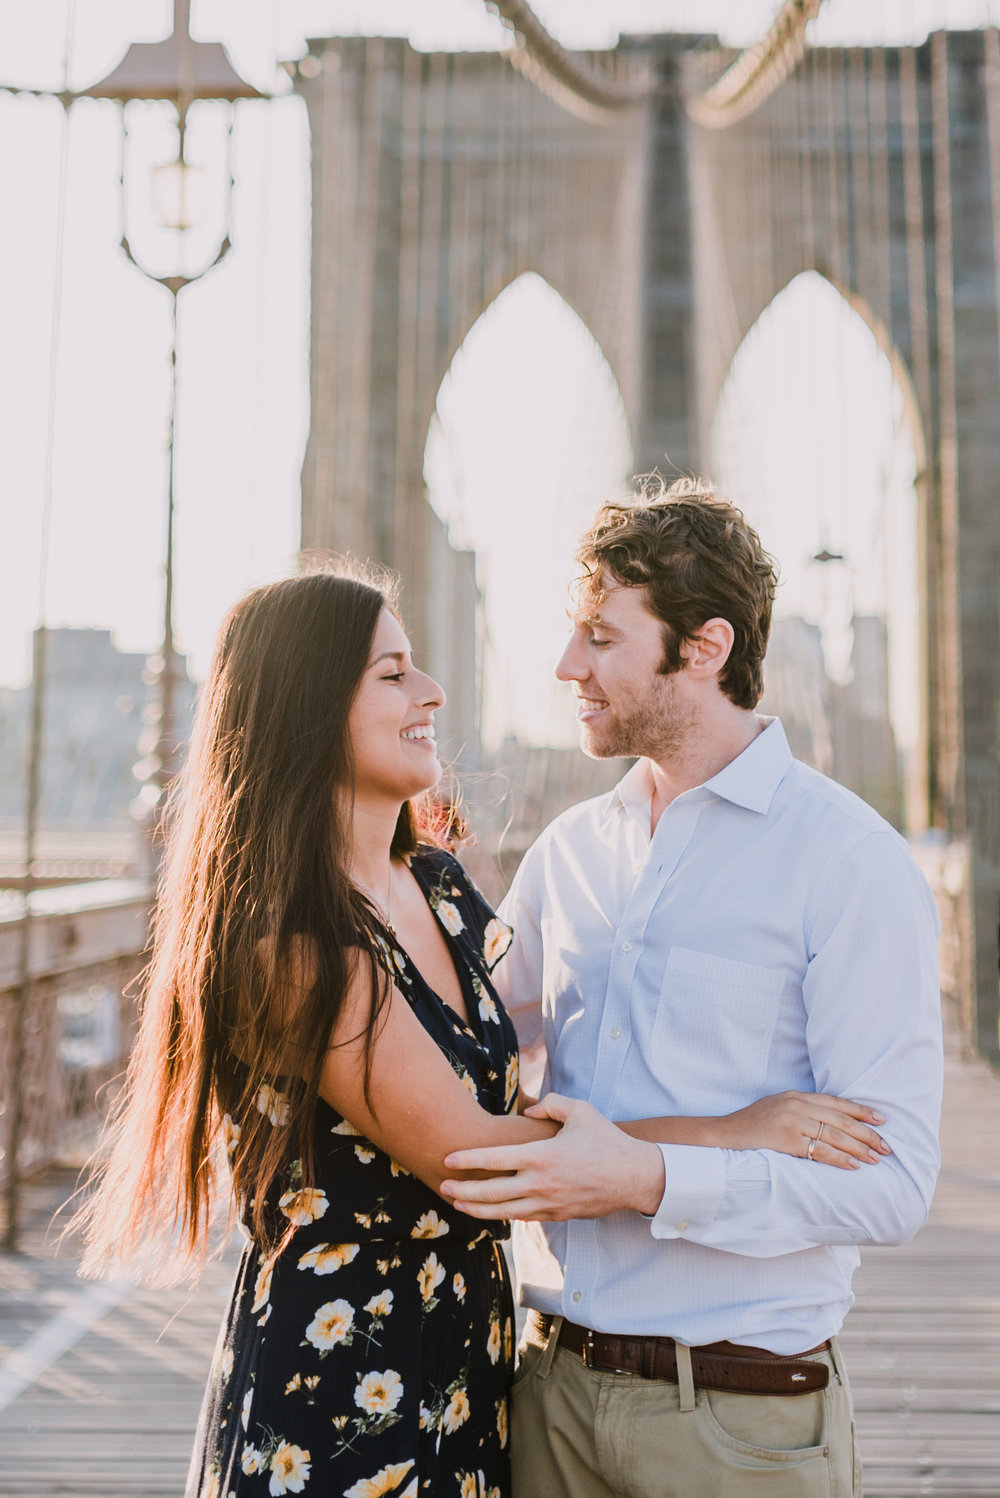 brooklyn bridge engagement shoot, couple shoot nyc, nyc wedding photographer, destination wedding photographer, documentary wedding photographer in nyc (13).jpg